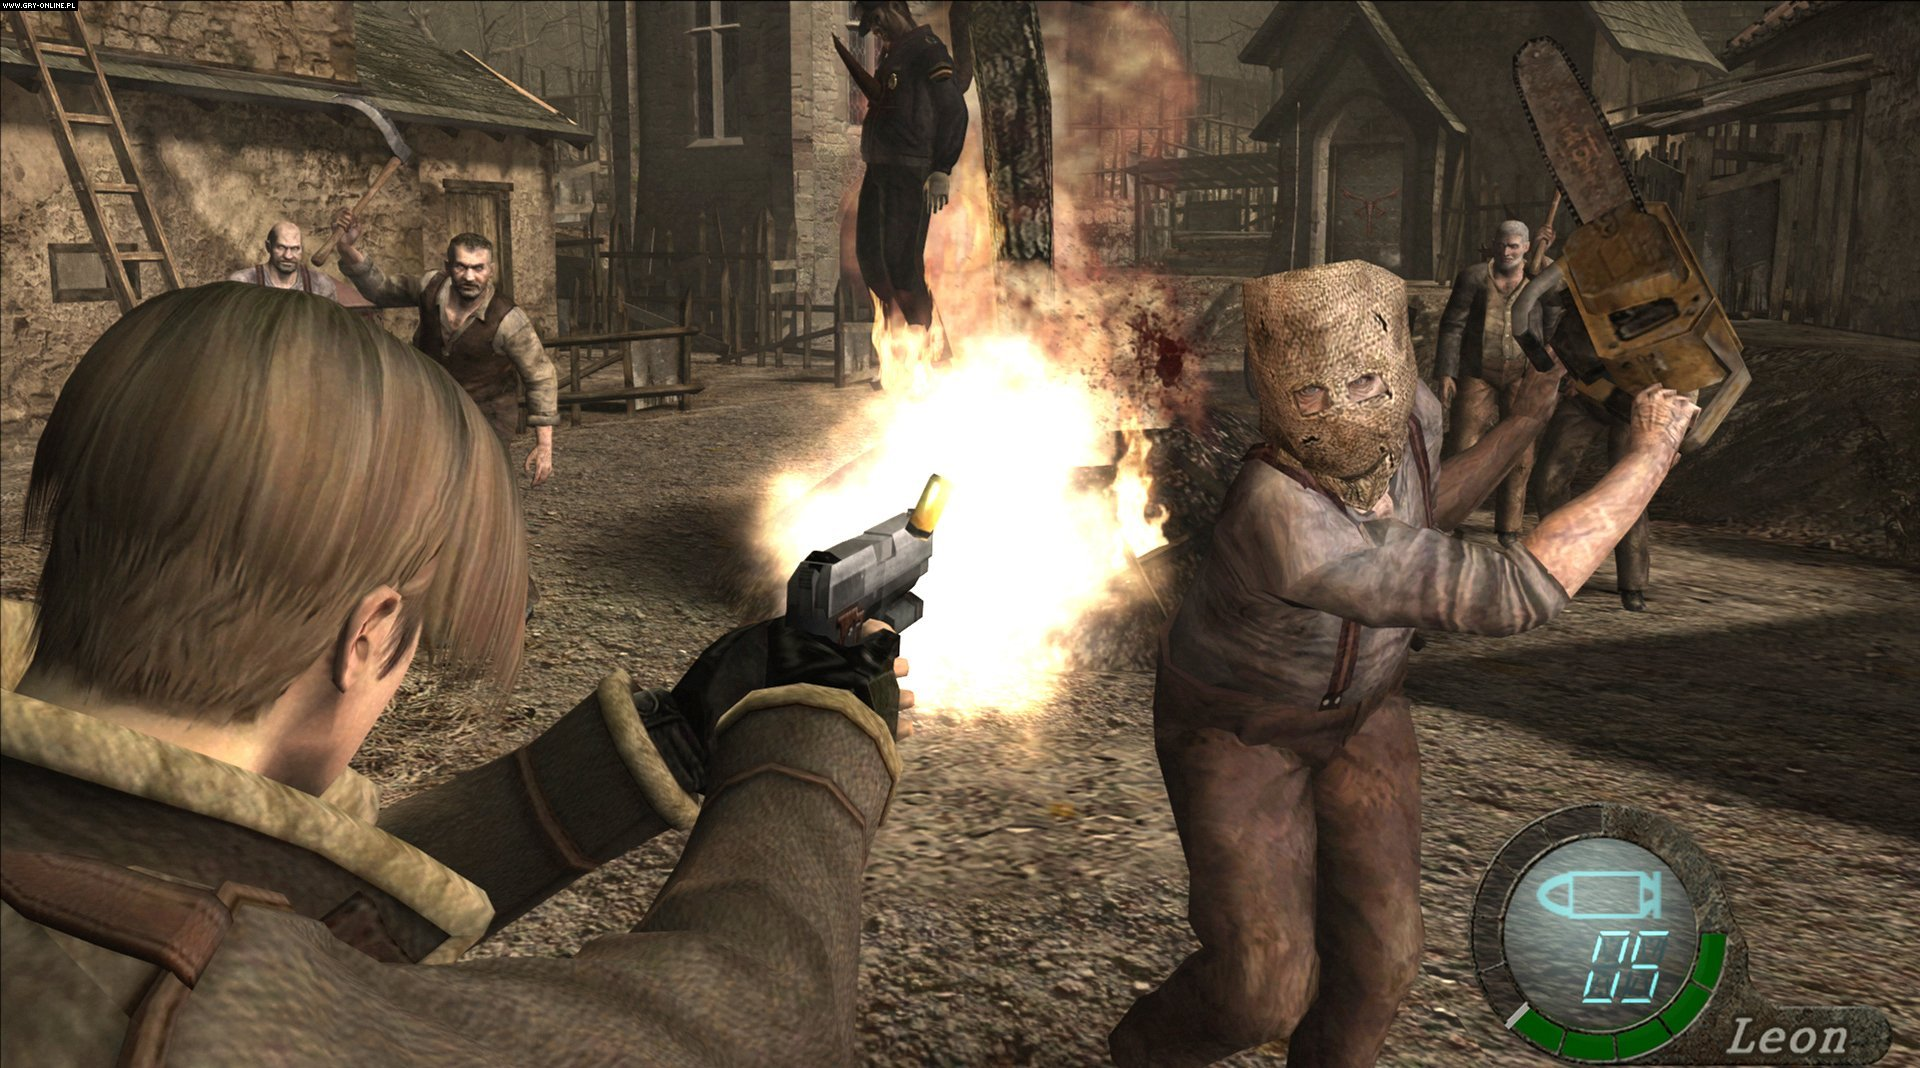 Resident Evil 4 HD PC, PS4, XONE, Switch Gry Screen 1/38, Capcom